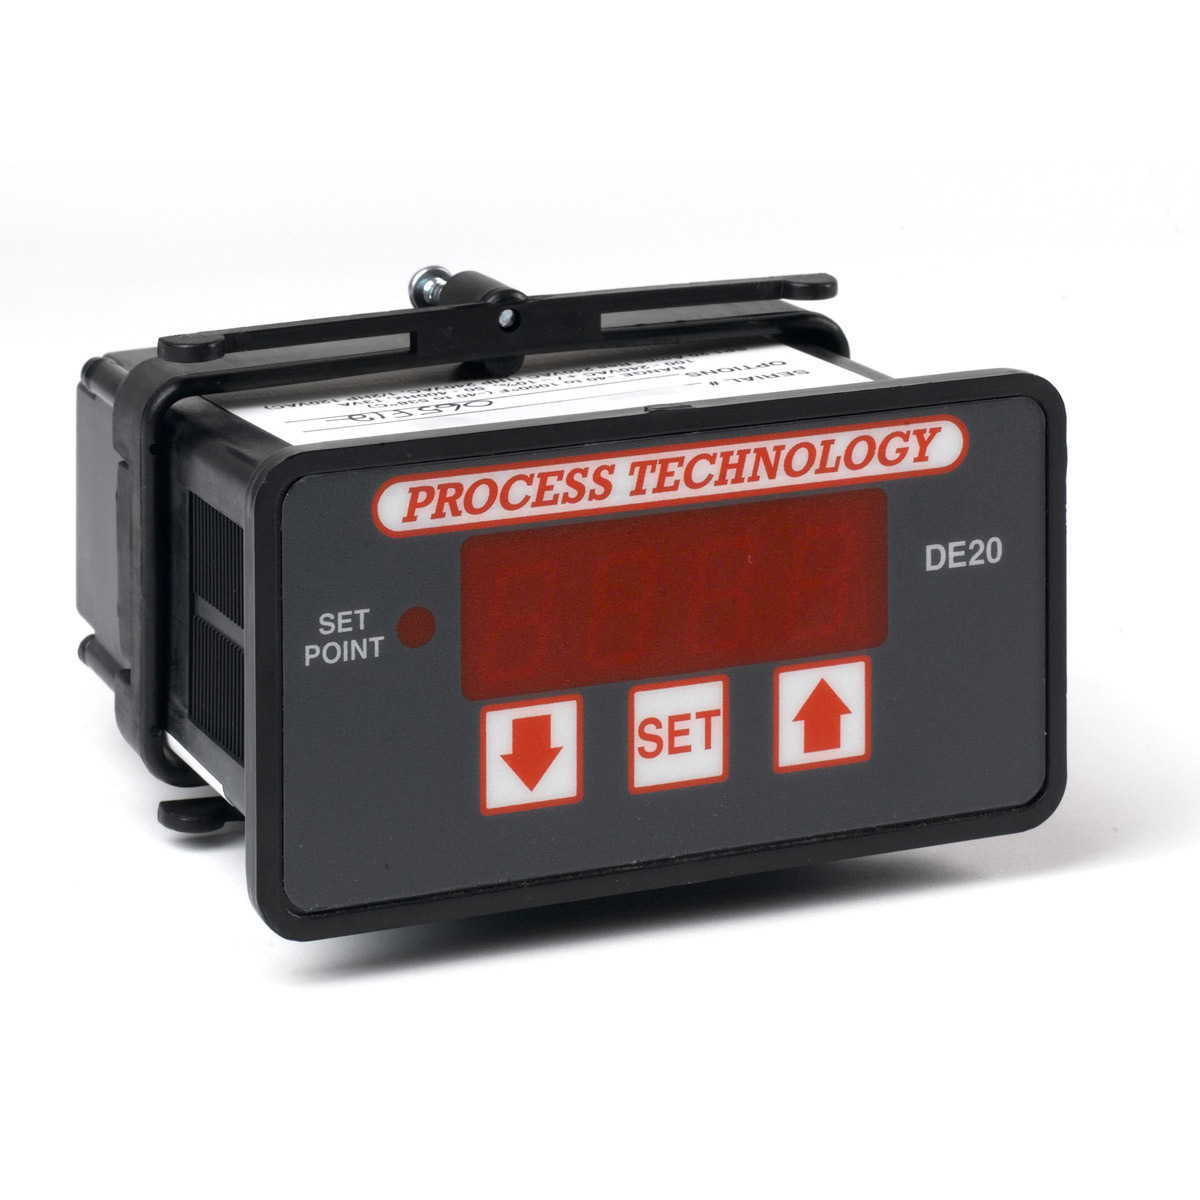 Process Technology DE series 20 digital thermostat